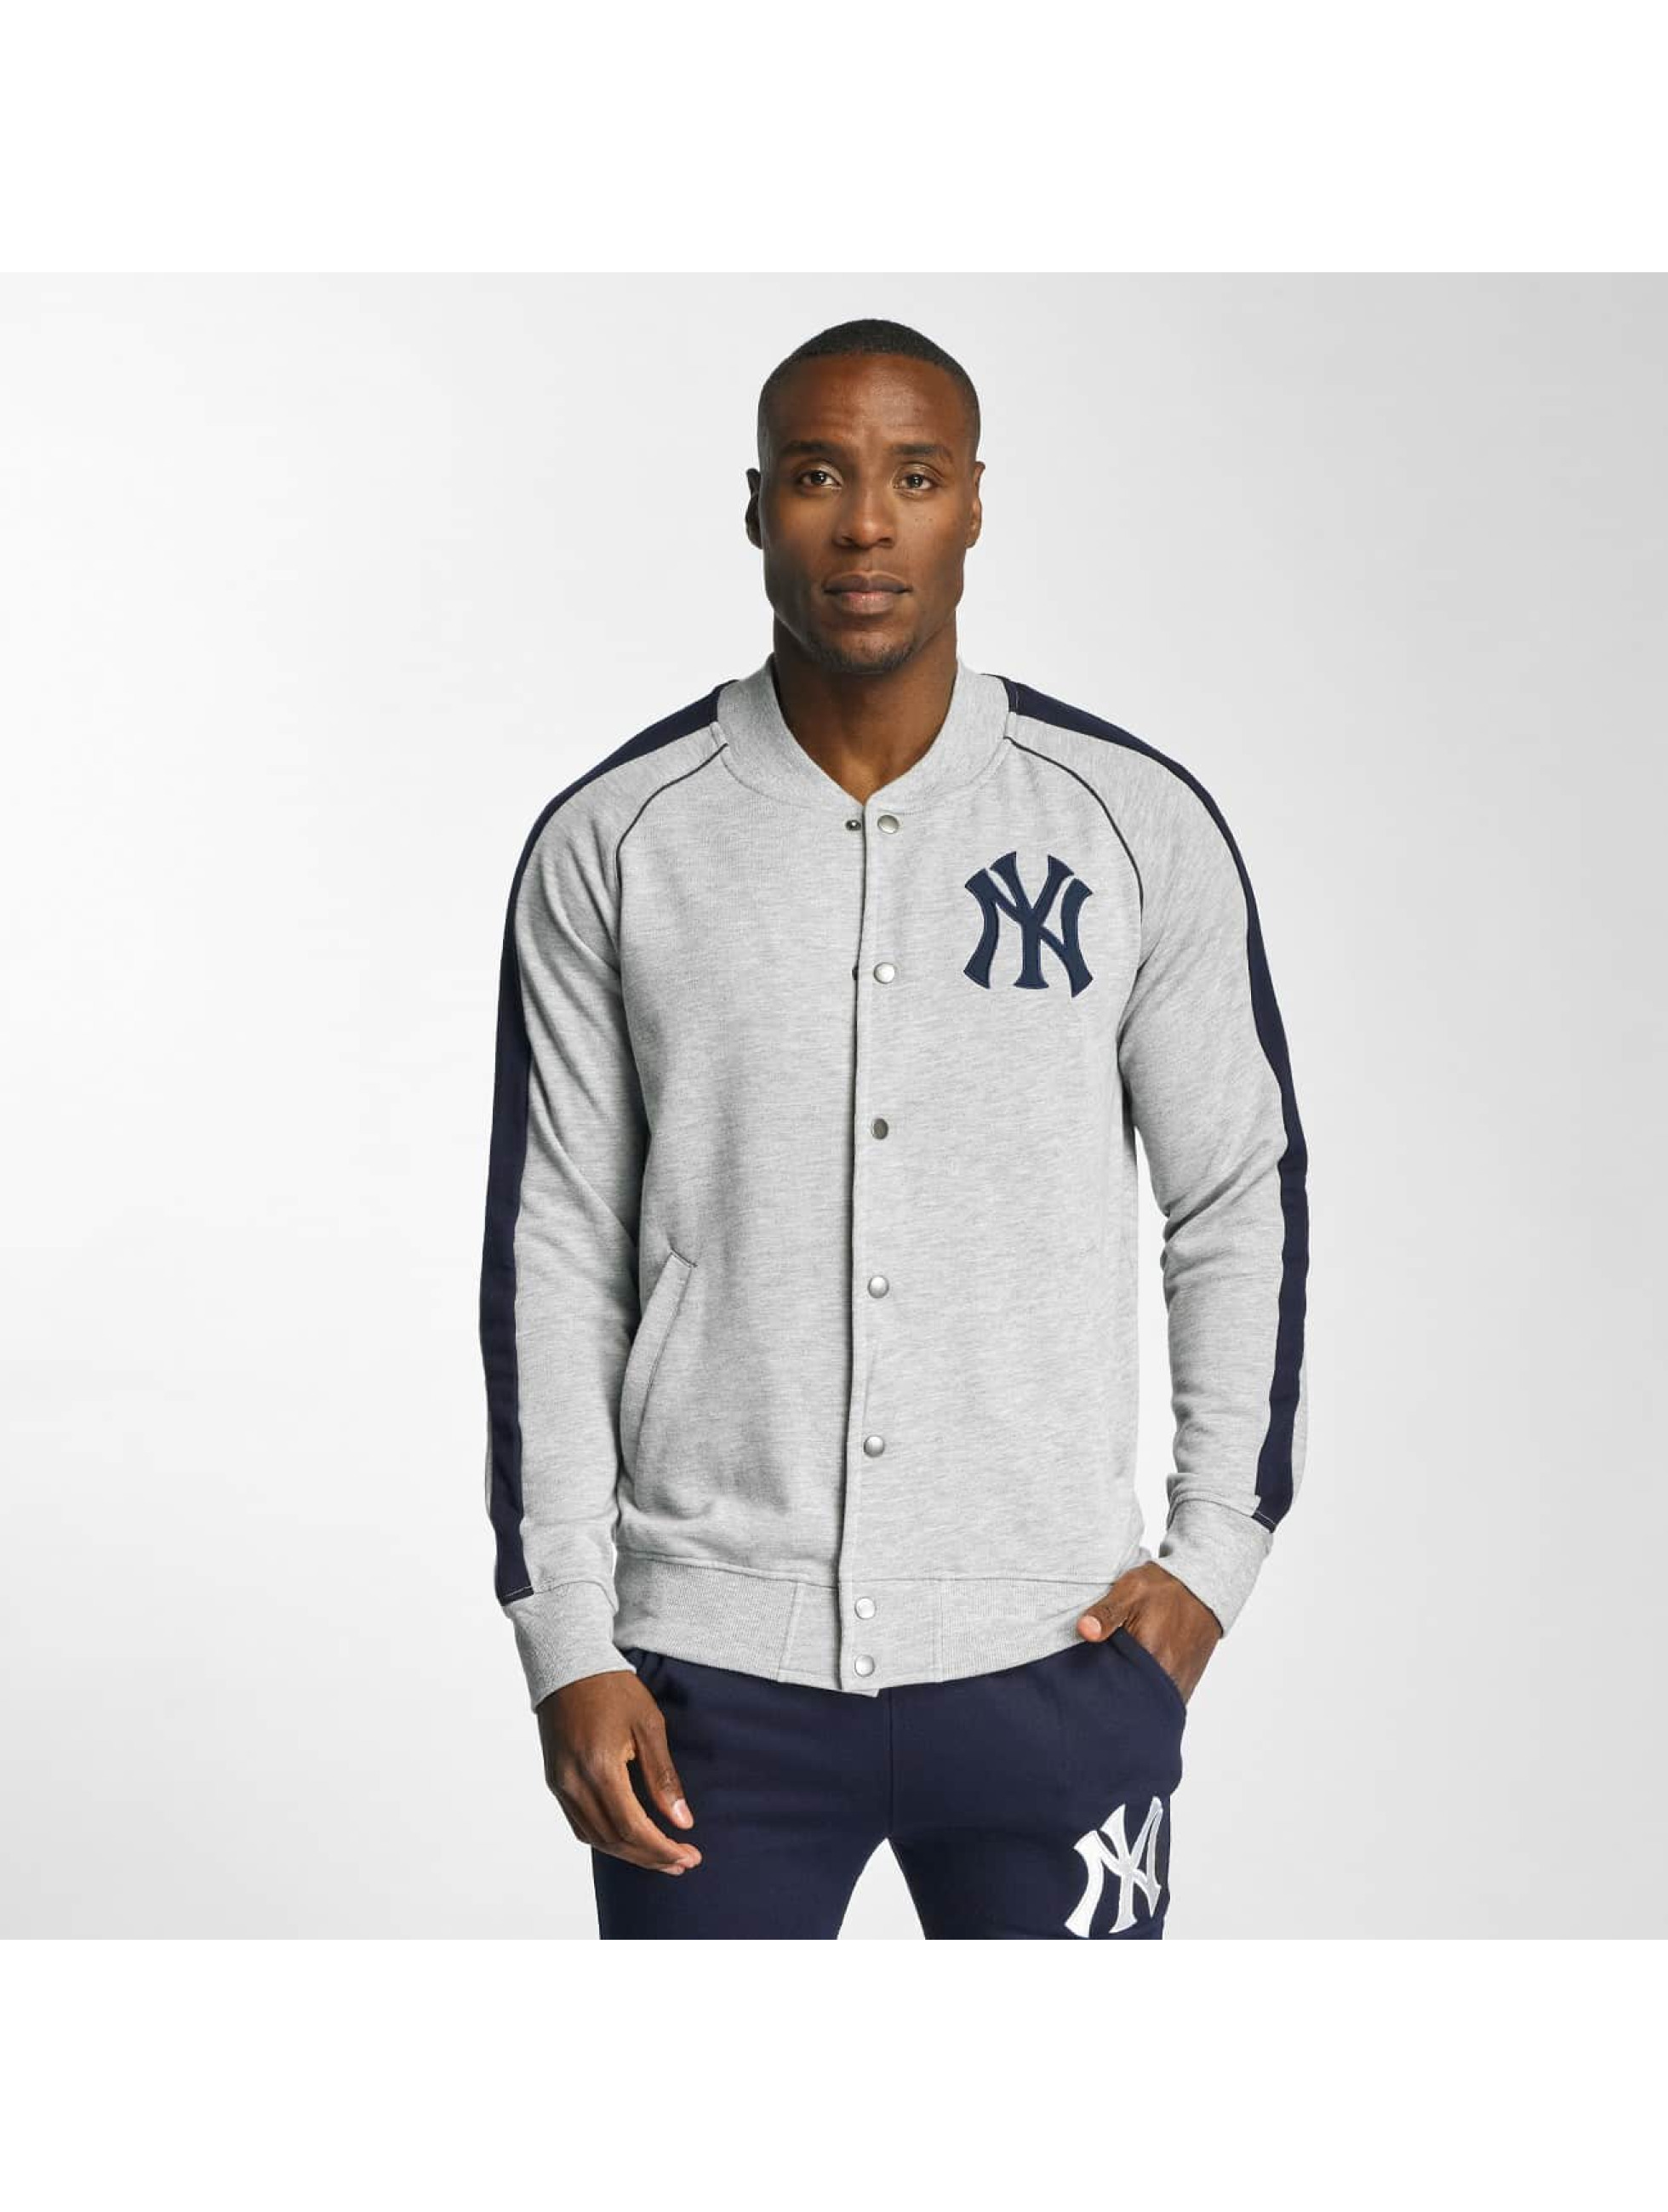 Majestic Athletic Männer College Jacke NY Yankees in grau